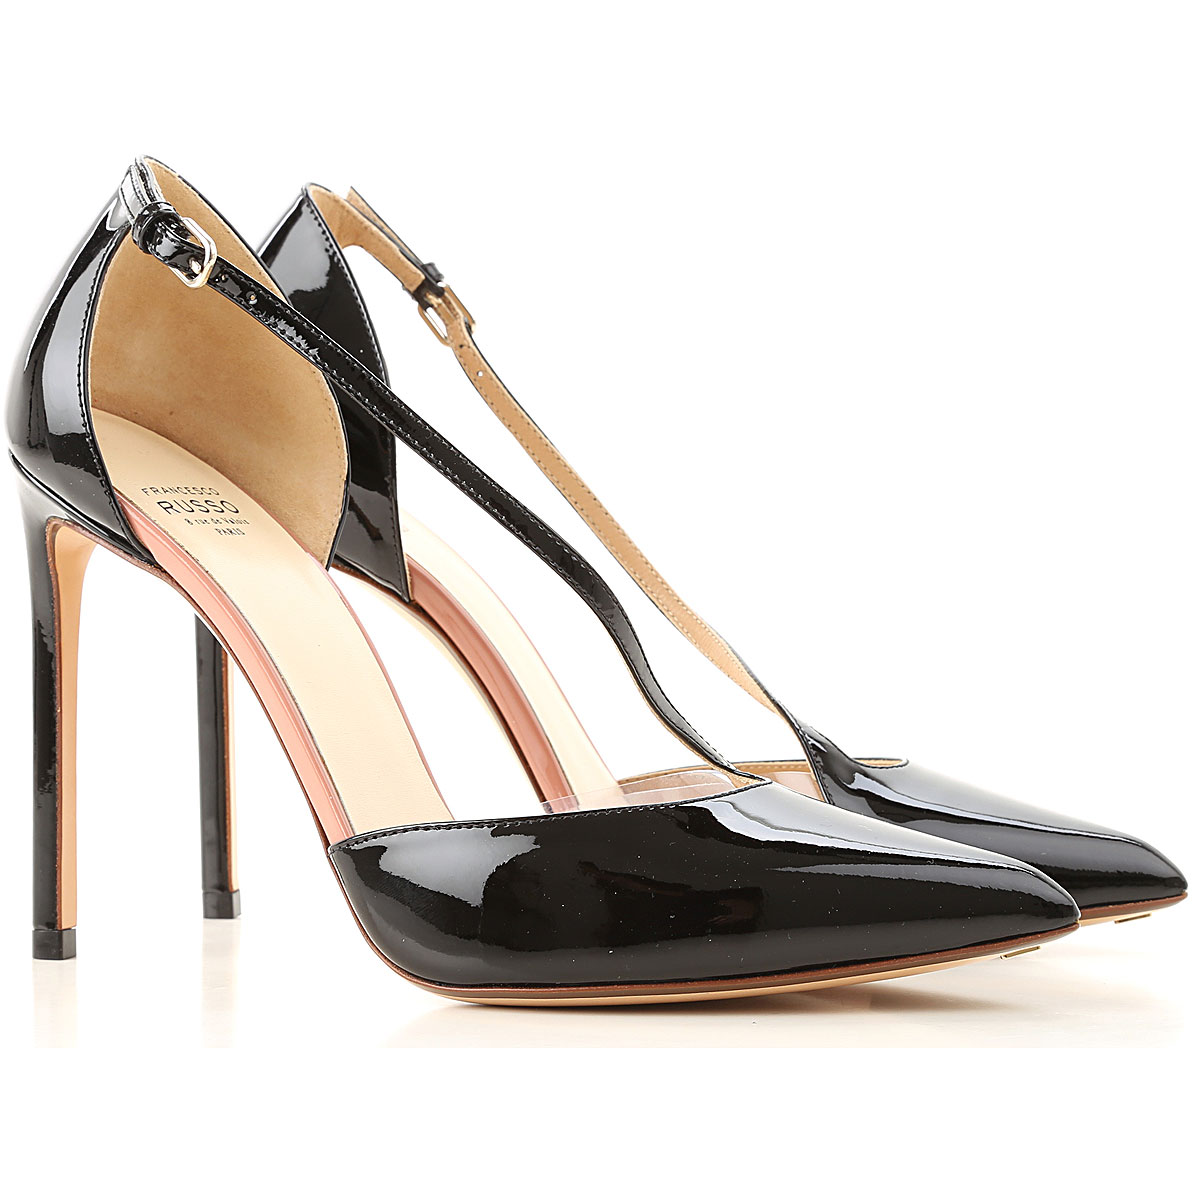 Francesco Russo Pumps & High Heels for Women On Sale in Outlet, Black, Patent Leather, 2019, 10 6 6.5 9